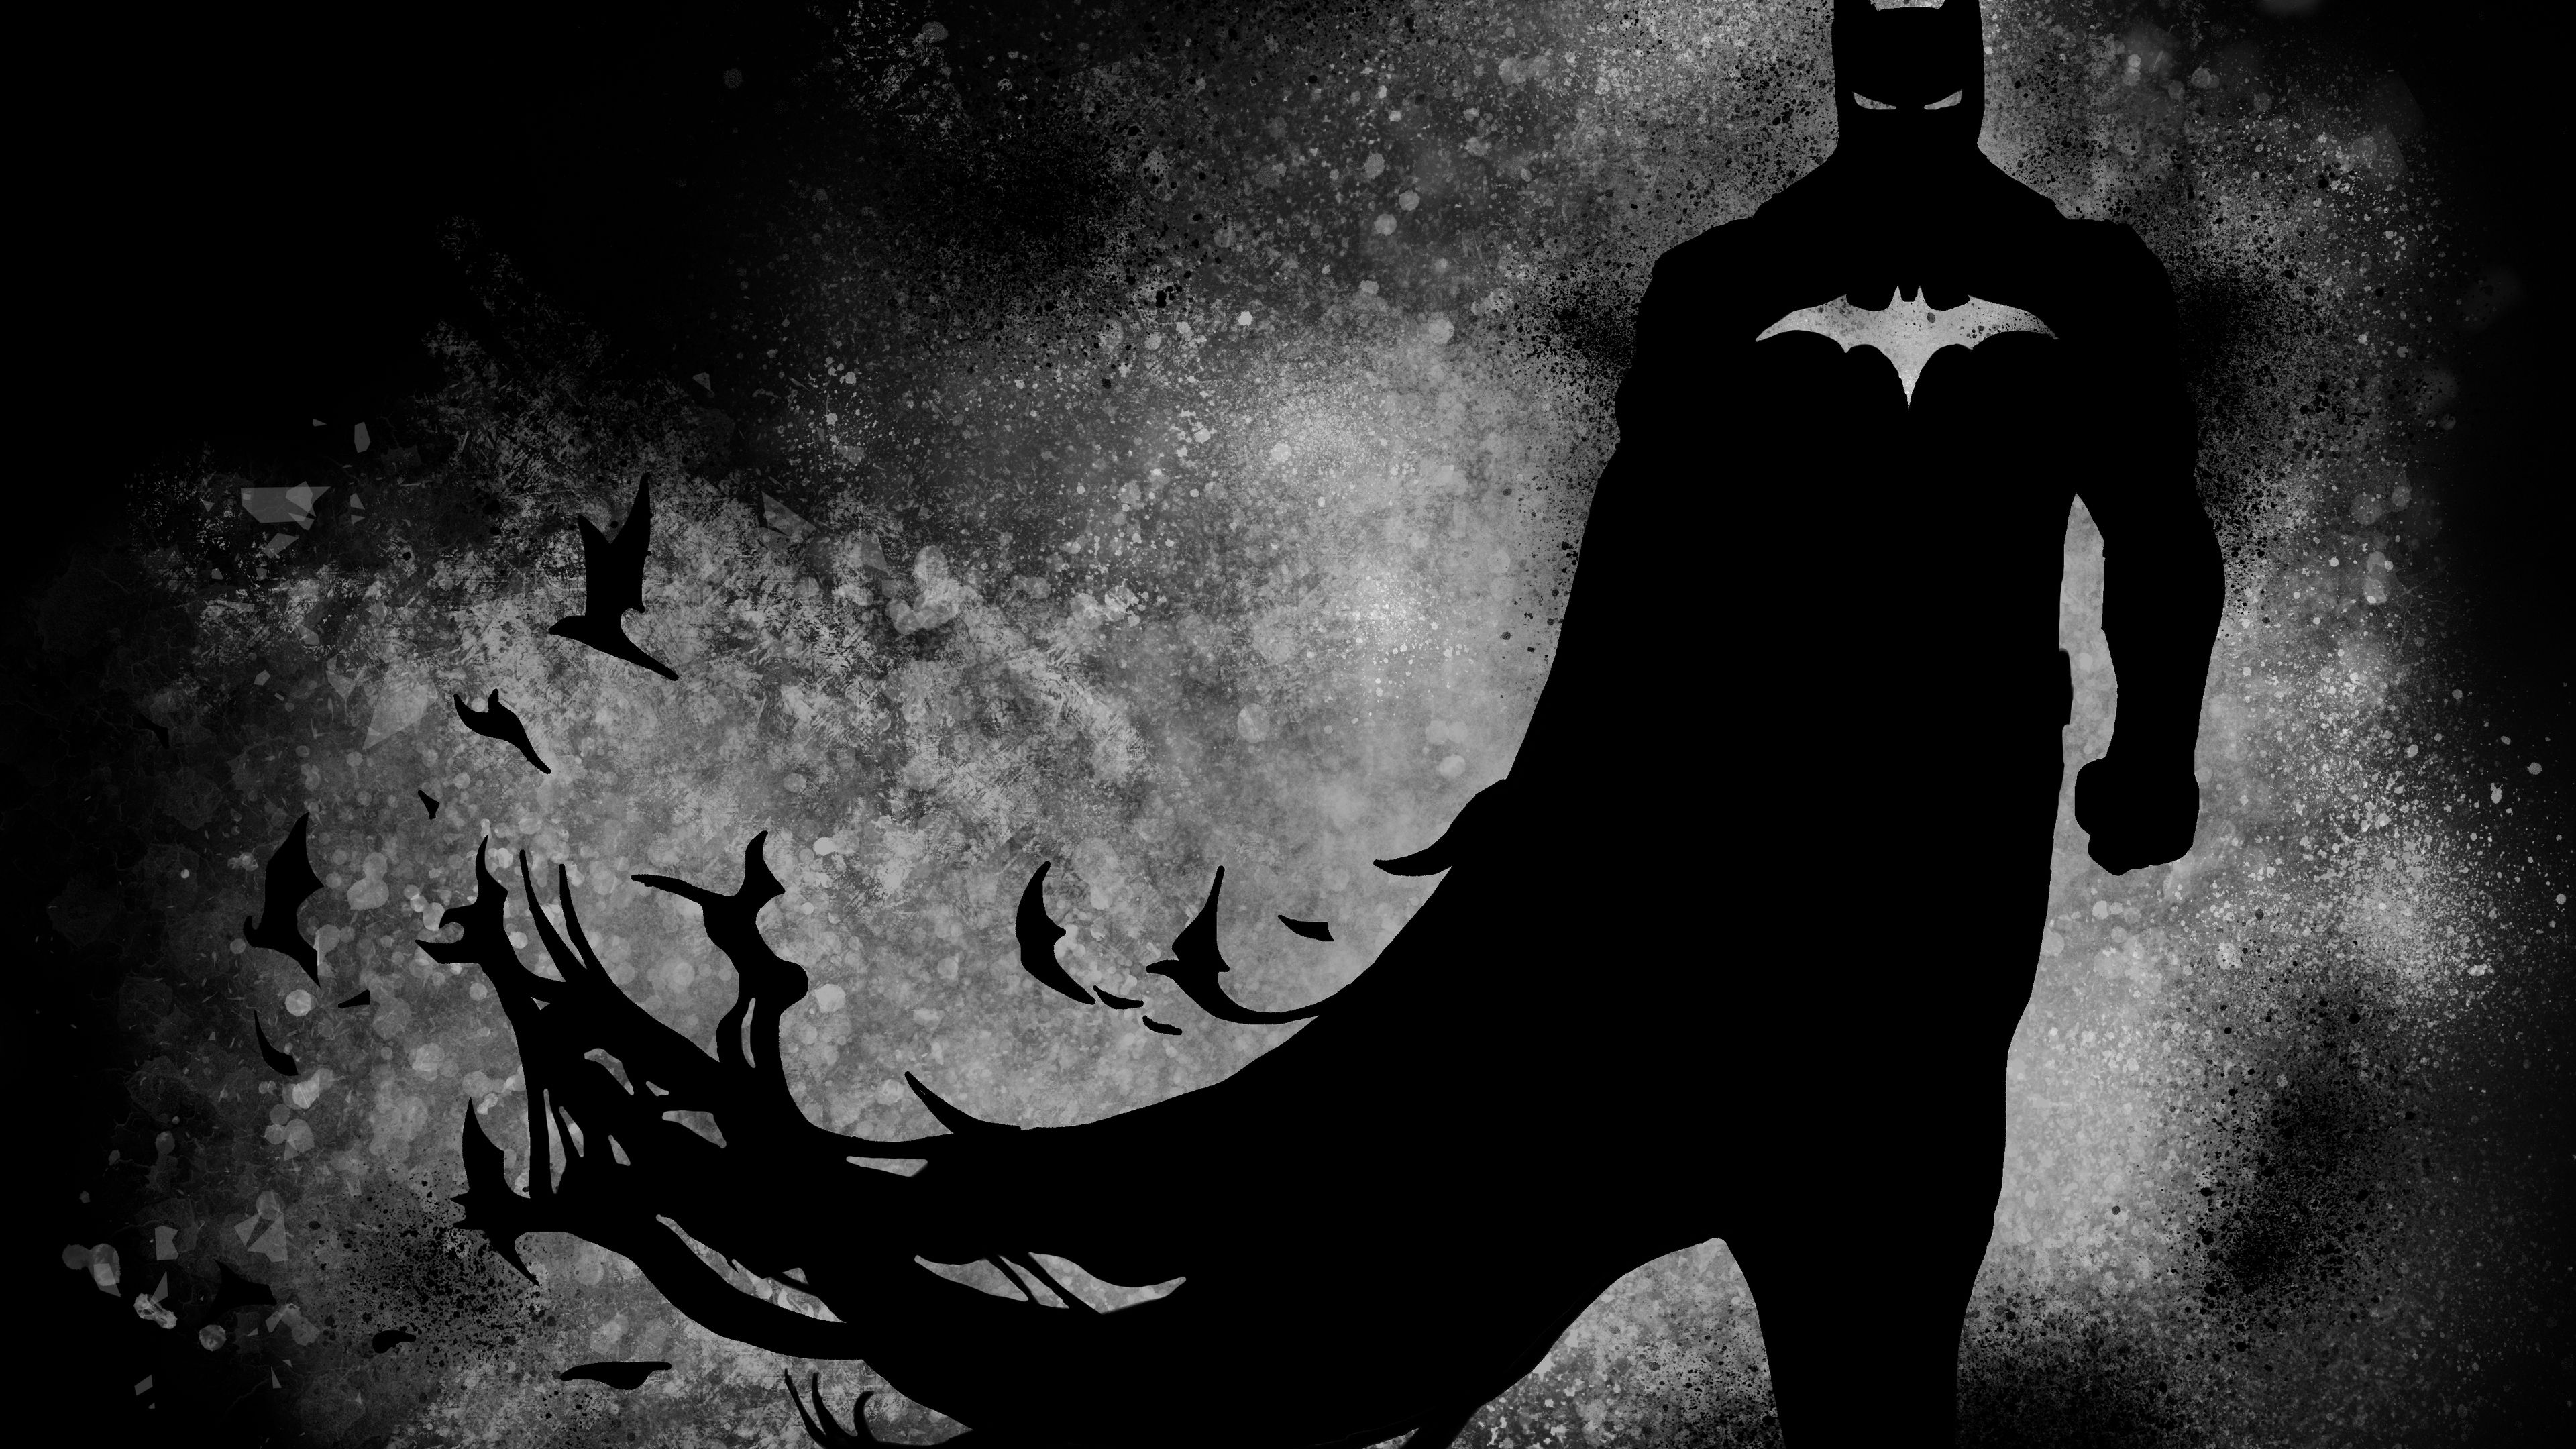 The Dark Knight Paint 4k Superheroes Wallpapers Hd Wallpapers Behance Wallpapers Batman Wallpapers Art Batman Wallpaper Superhero Wallpaper Batman Painting